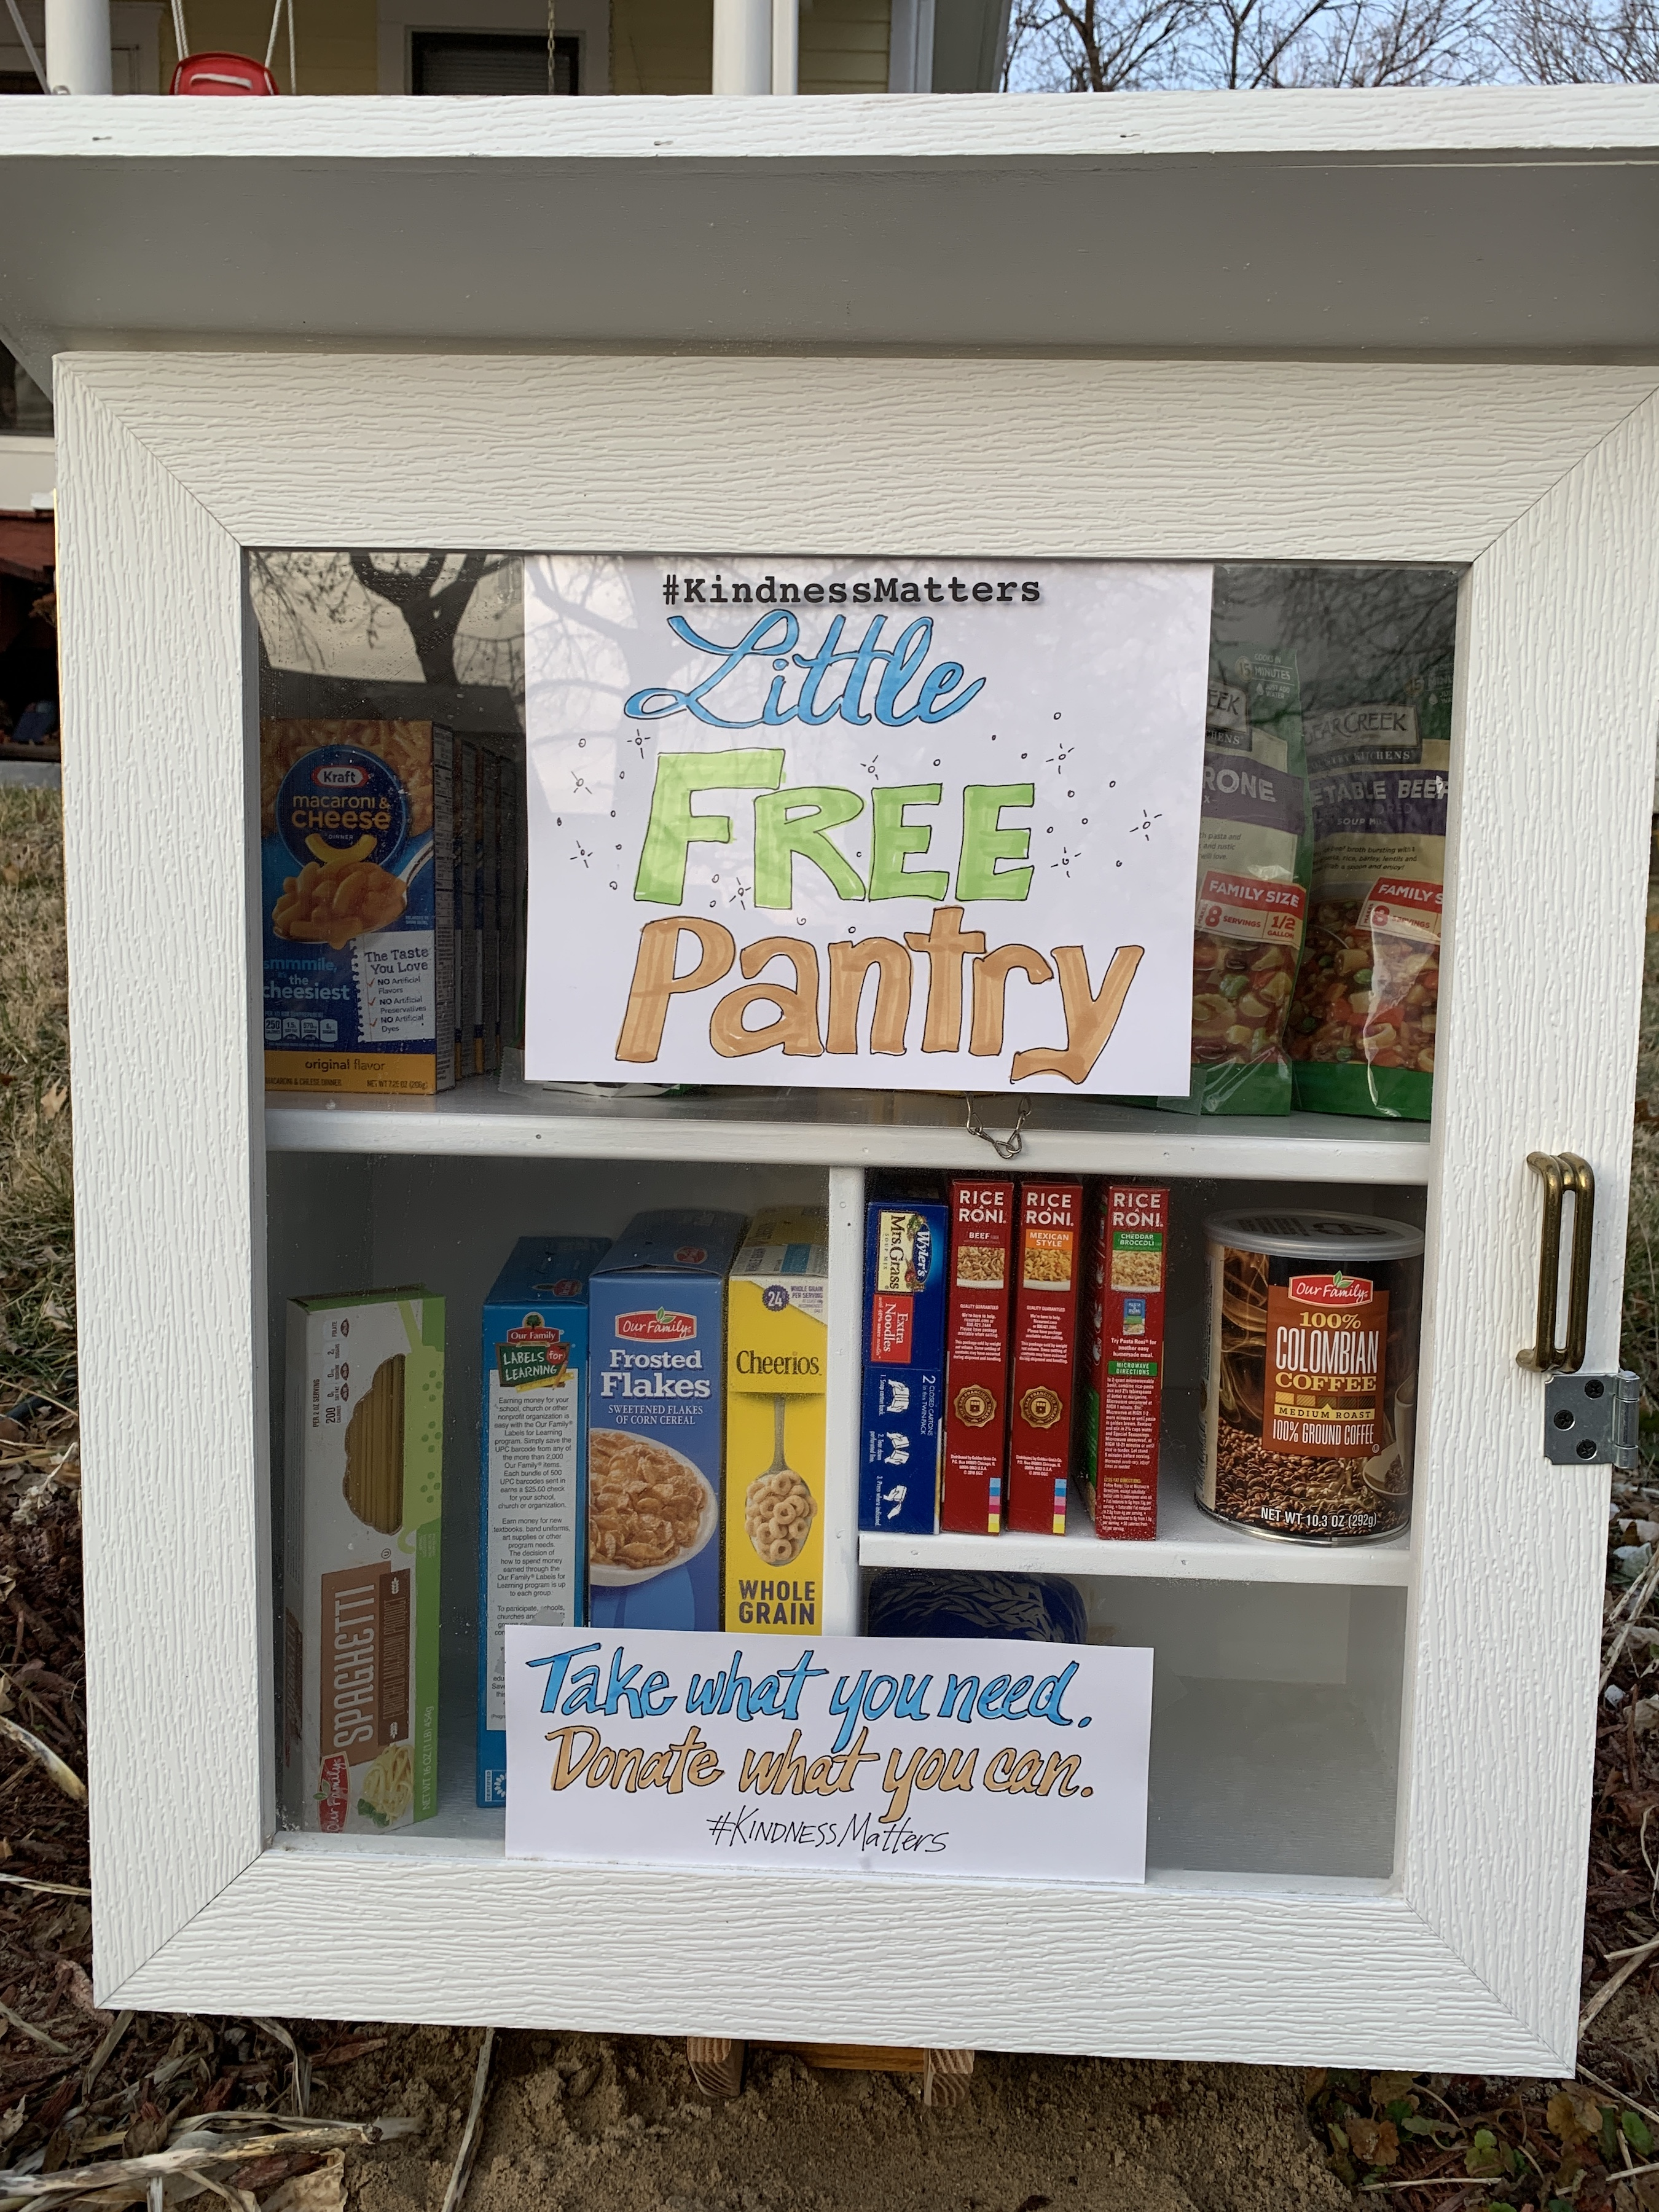 KindnessMatters Little Free Pantry Photo 1